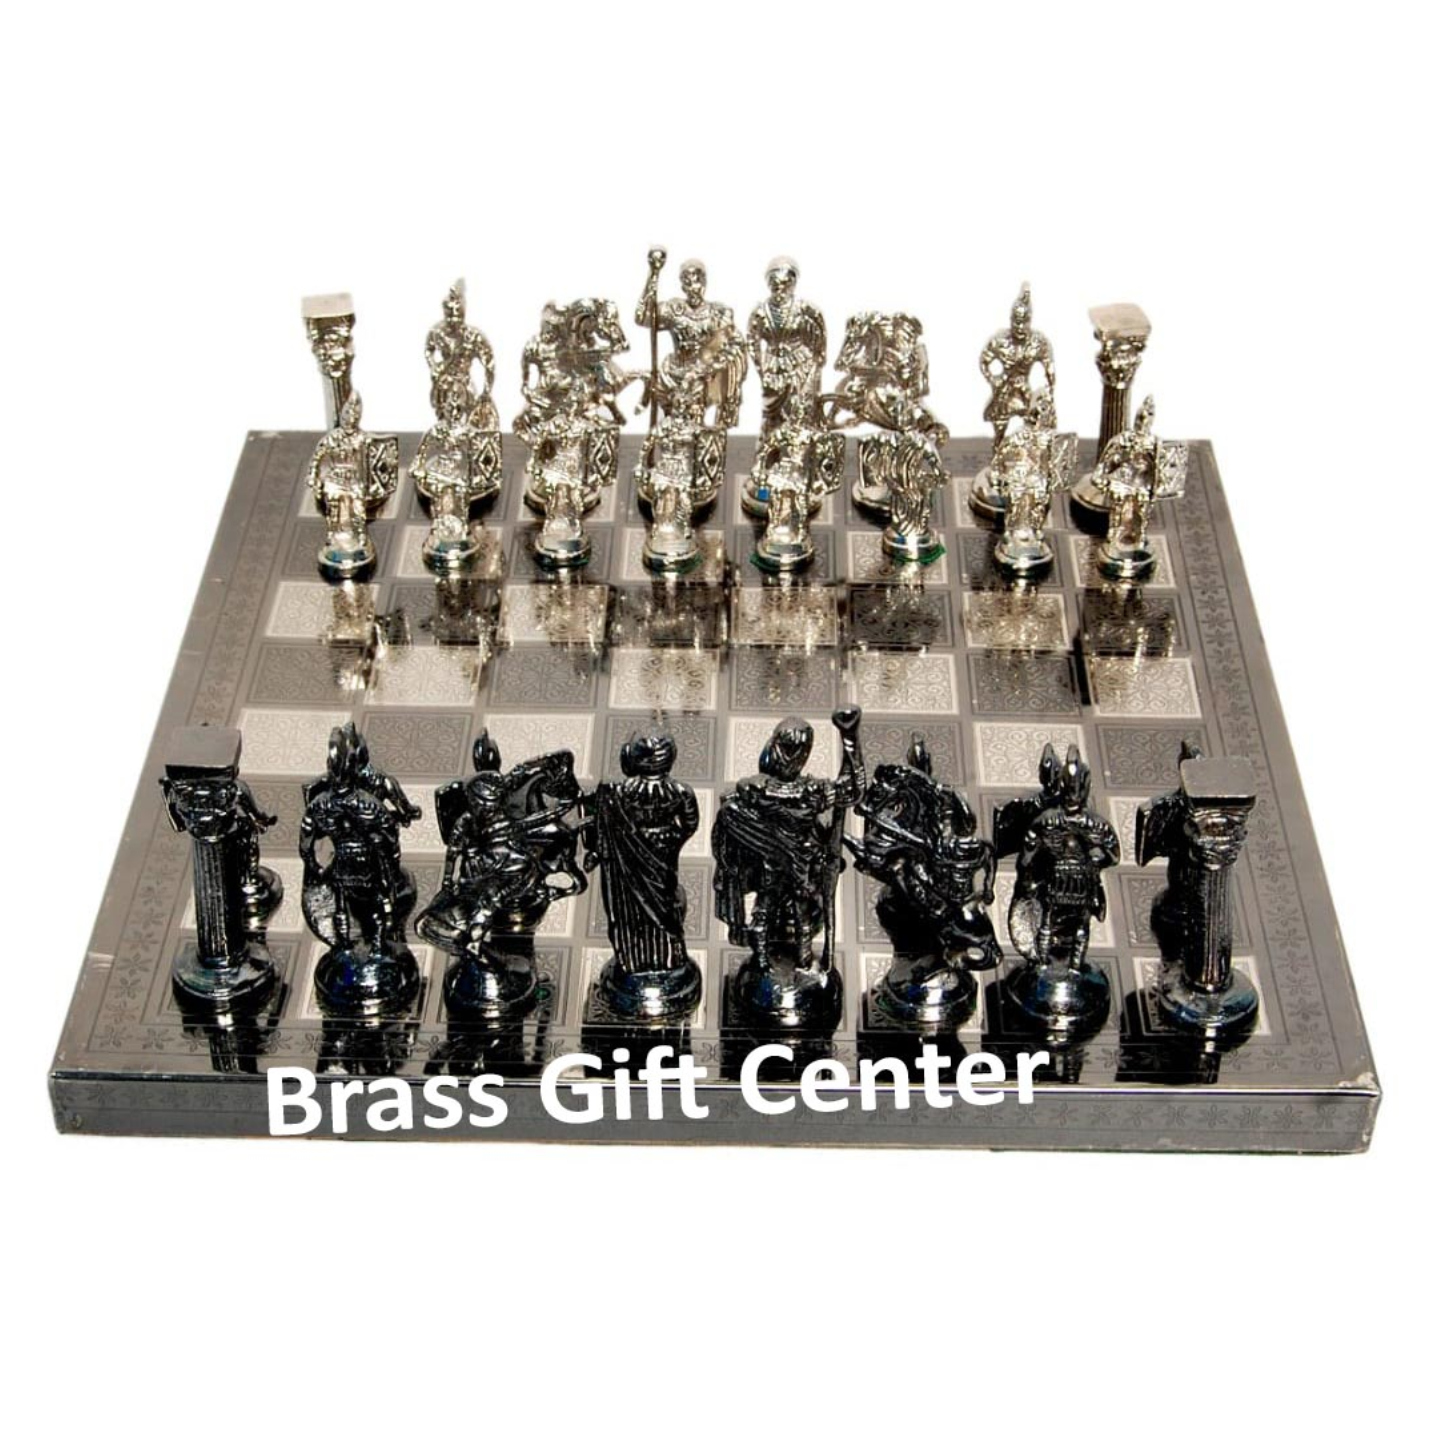 Brass Chess In Nickel and Black Finish - 1212 Inch  BS363 J